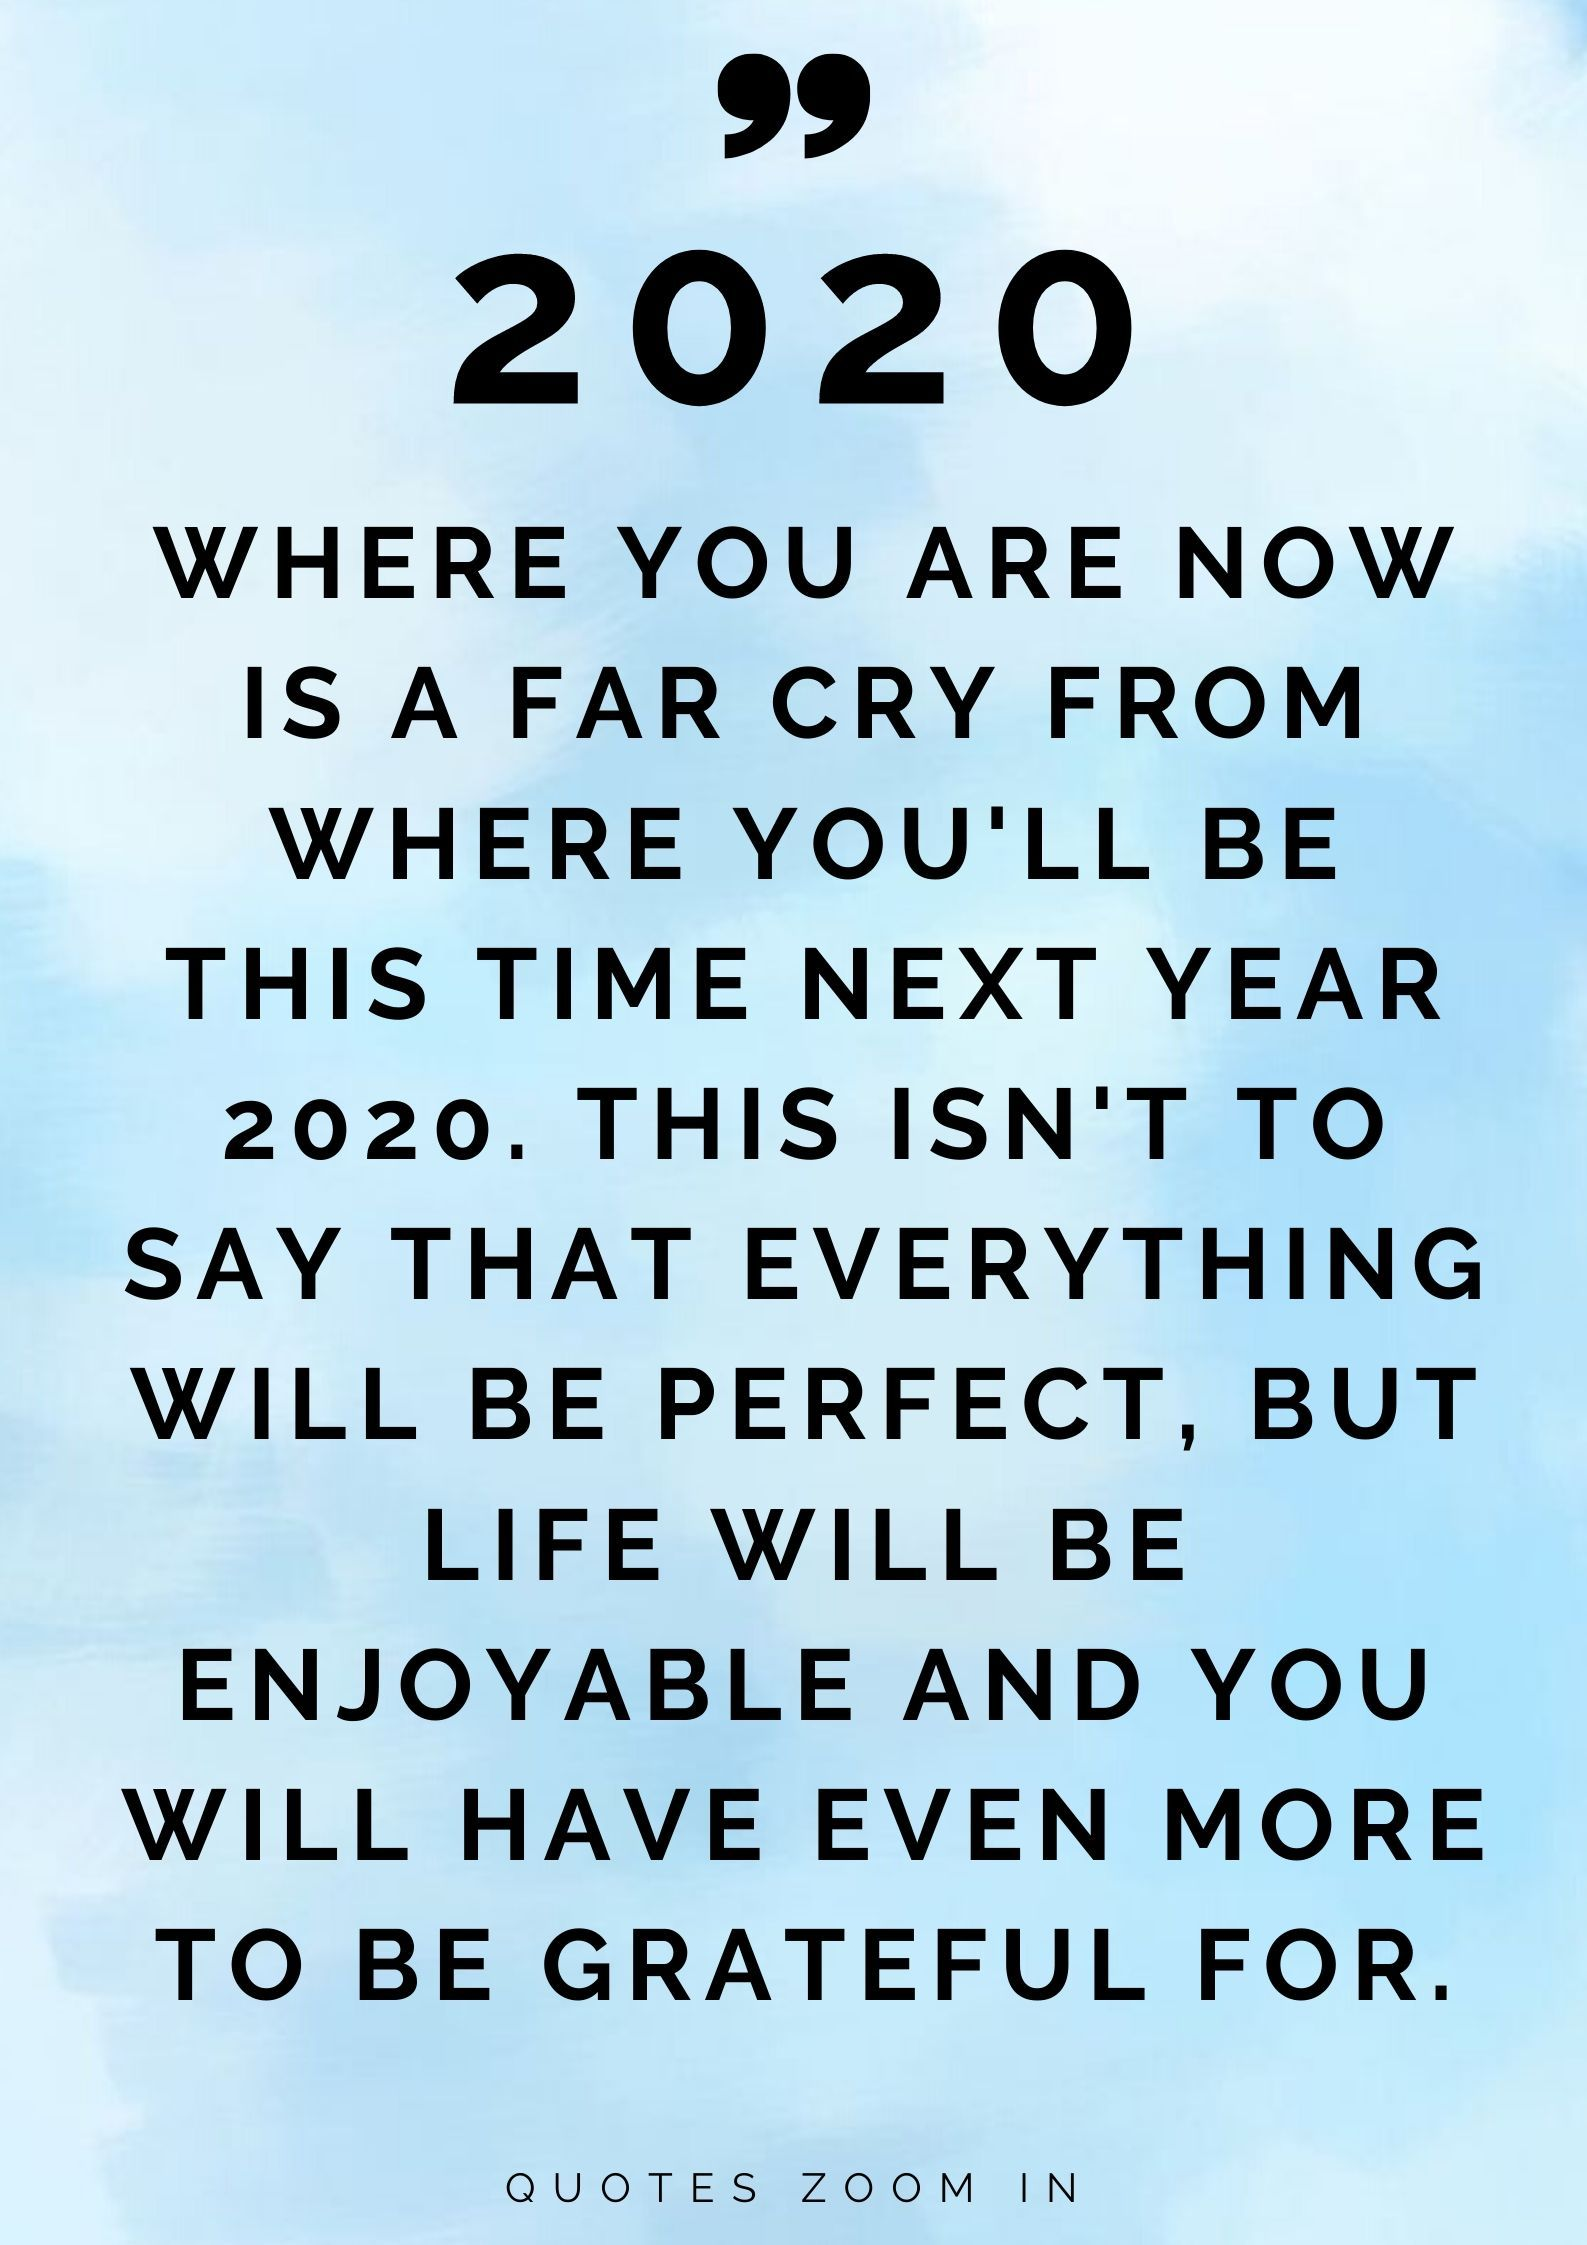 2020 Motivational Quotes For A Bright Year Ahead New Year Quotes Inspirational Happy Find Myself Quotes Happy New Year Quotes